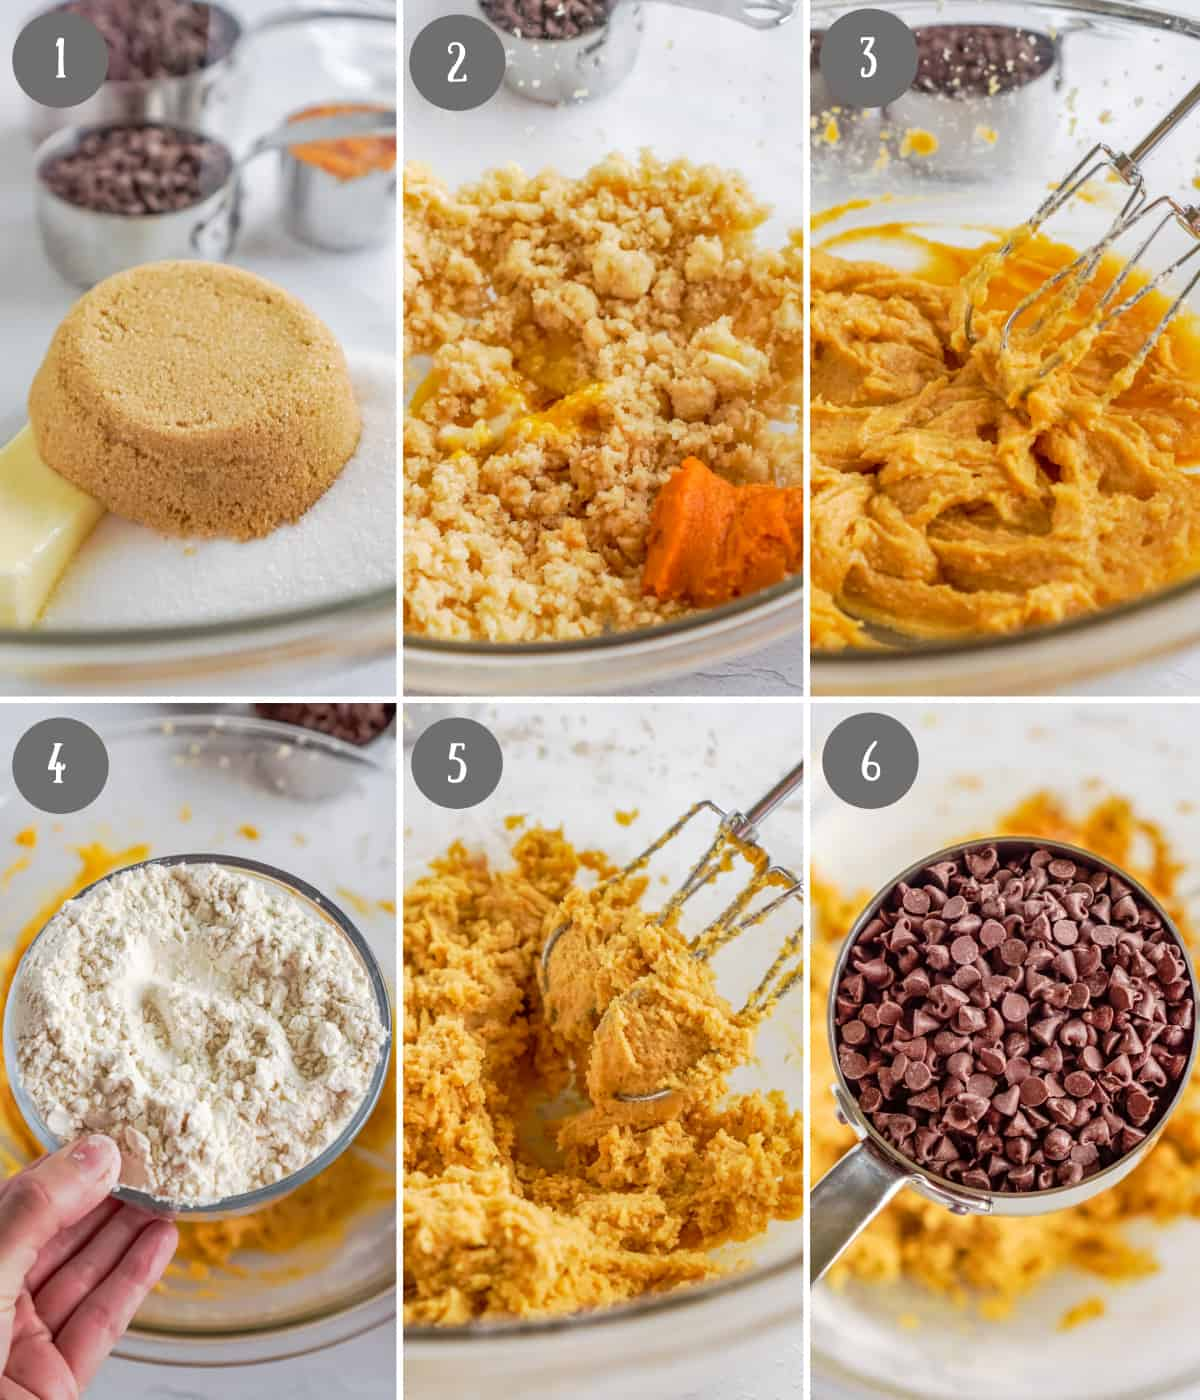 Six process photos. First one, butter and sugars in a bowl. Second one pumpkin added in. Third one, everything mixed together. Fourth one, Flour added in. Fifth one, everything mixed together. Sixth one, chocolate chips going in.